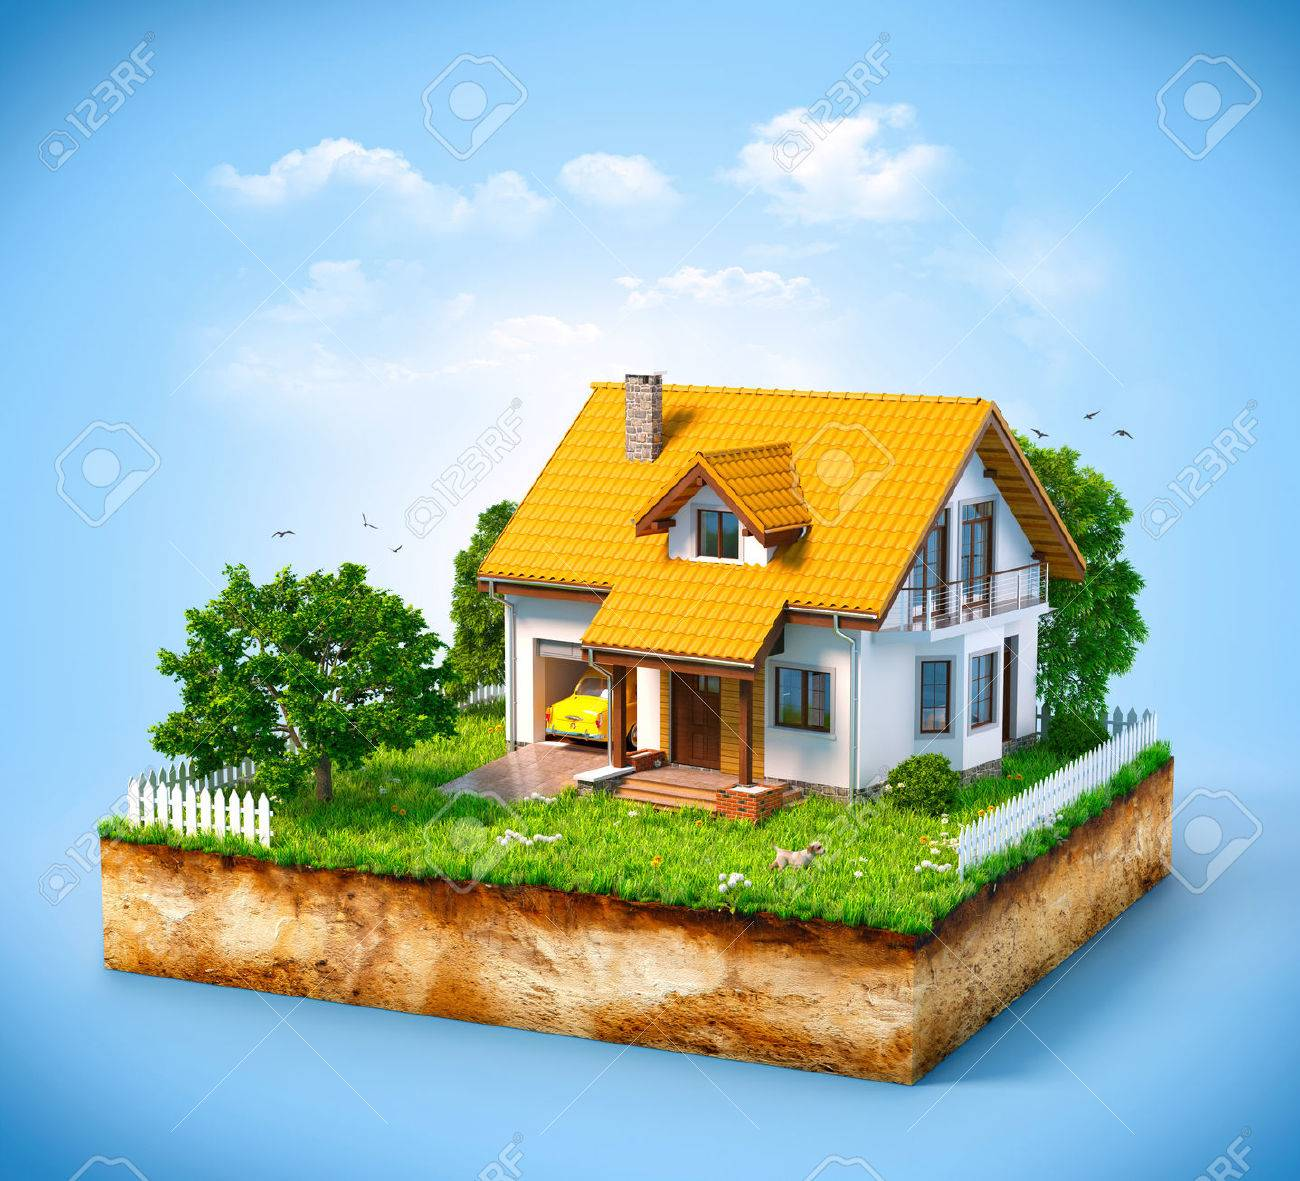 425,297 Home Design Stock Illustrations, Cliparts And Royalty Free ...